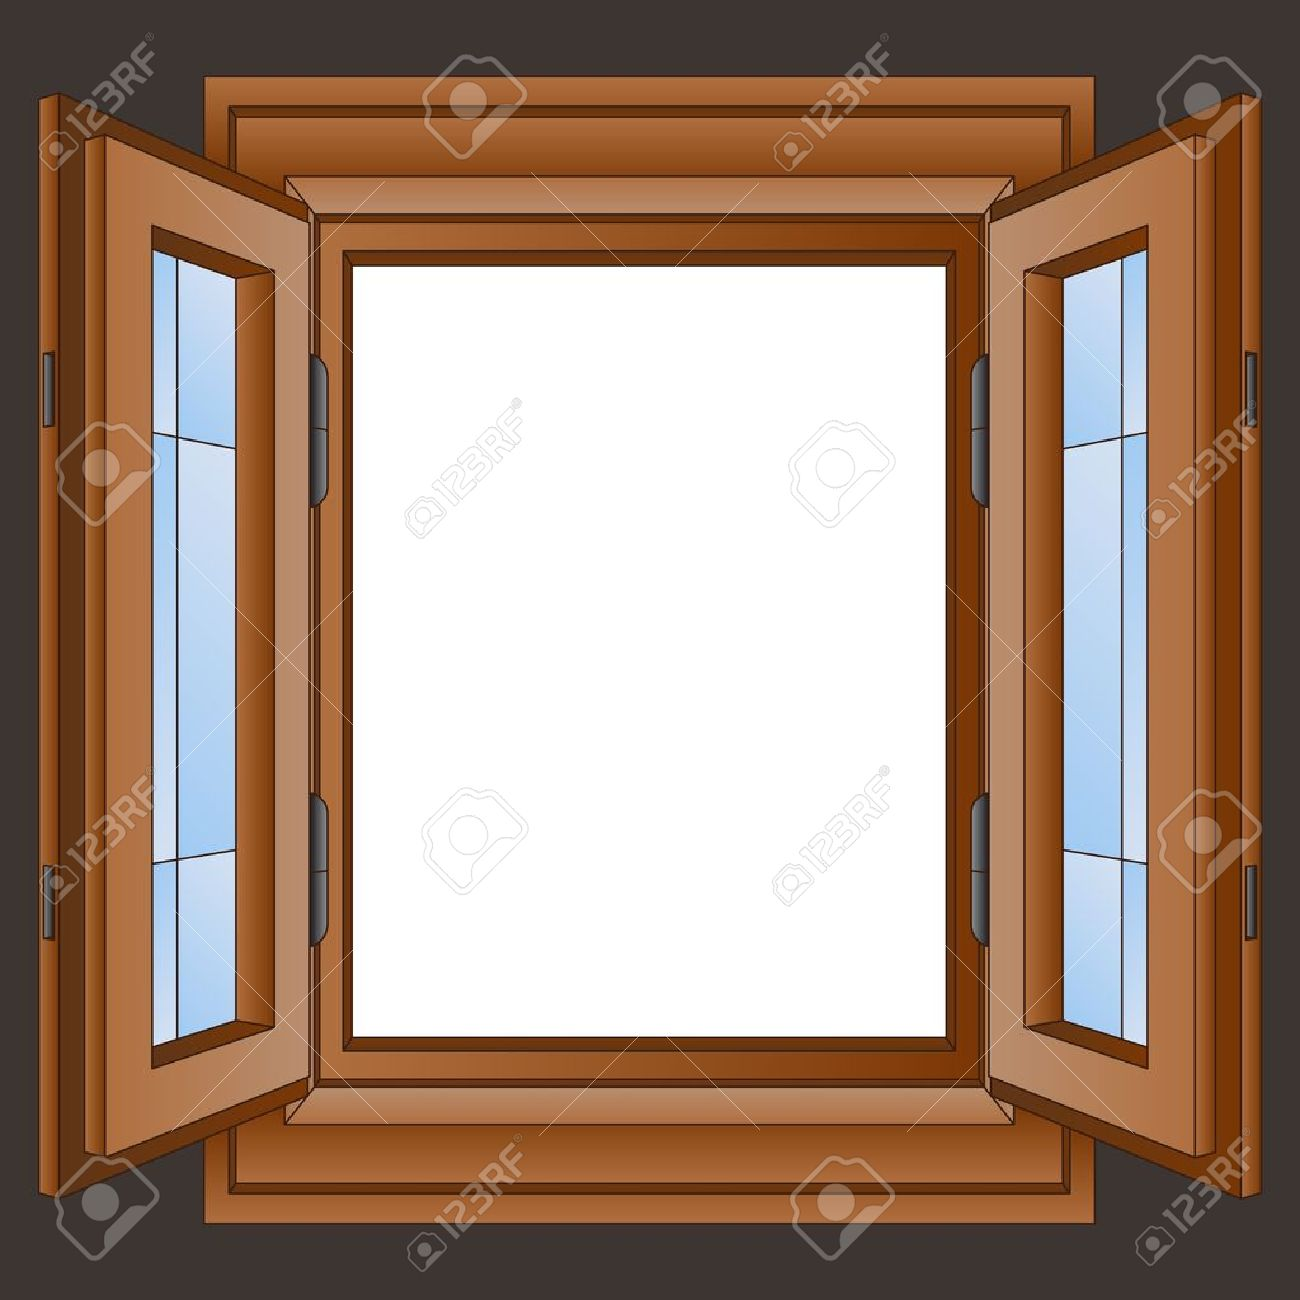 open wooden window frame in the wall vector illustration Stock Vector - 21227337